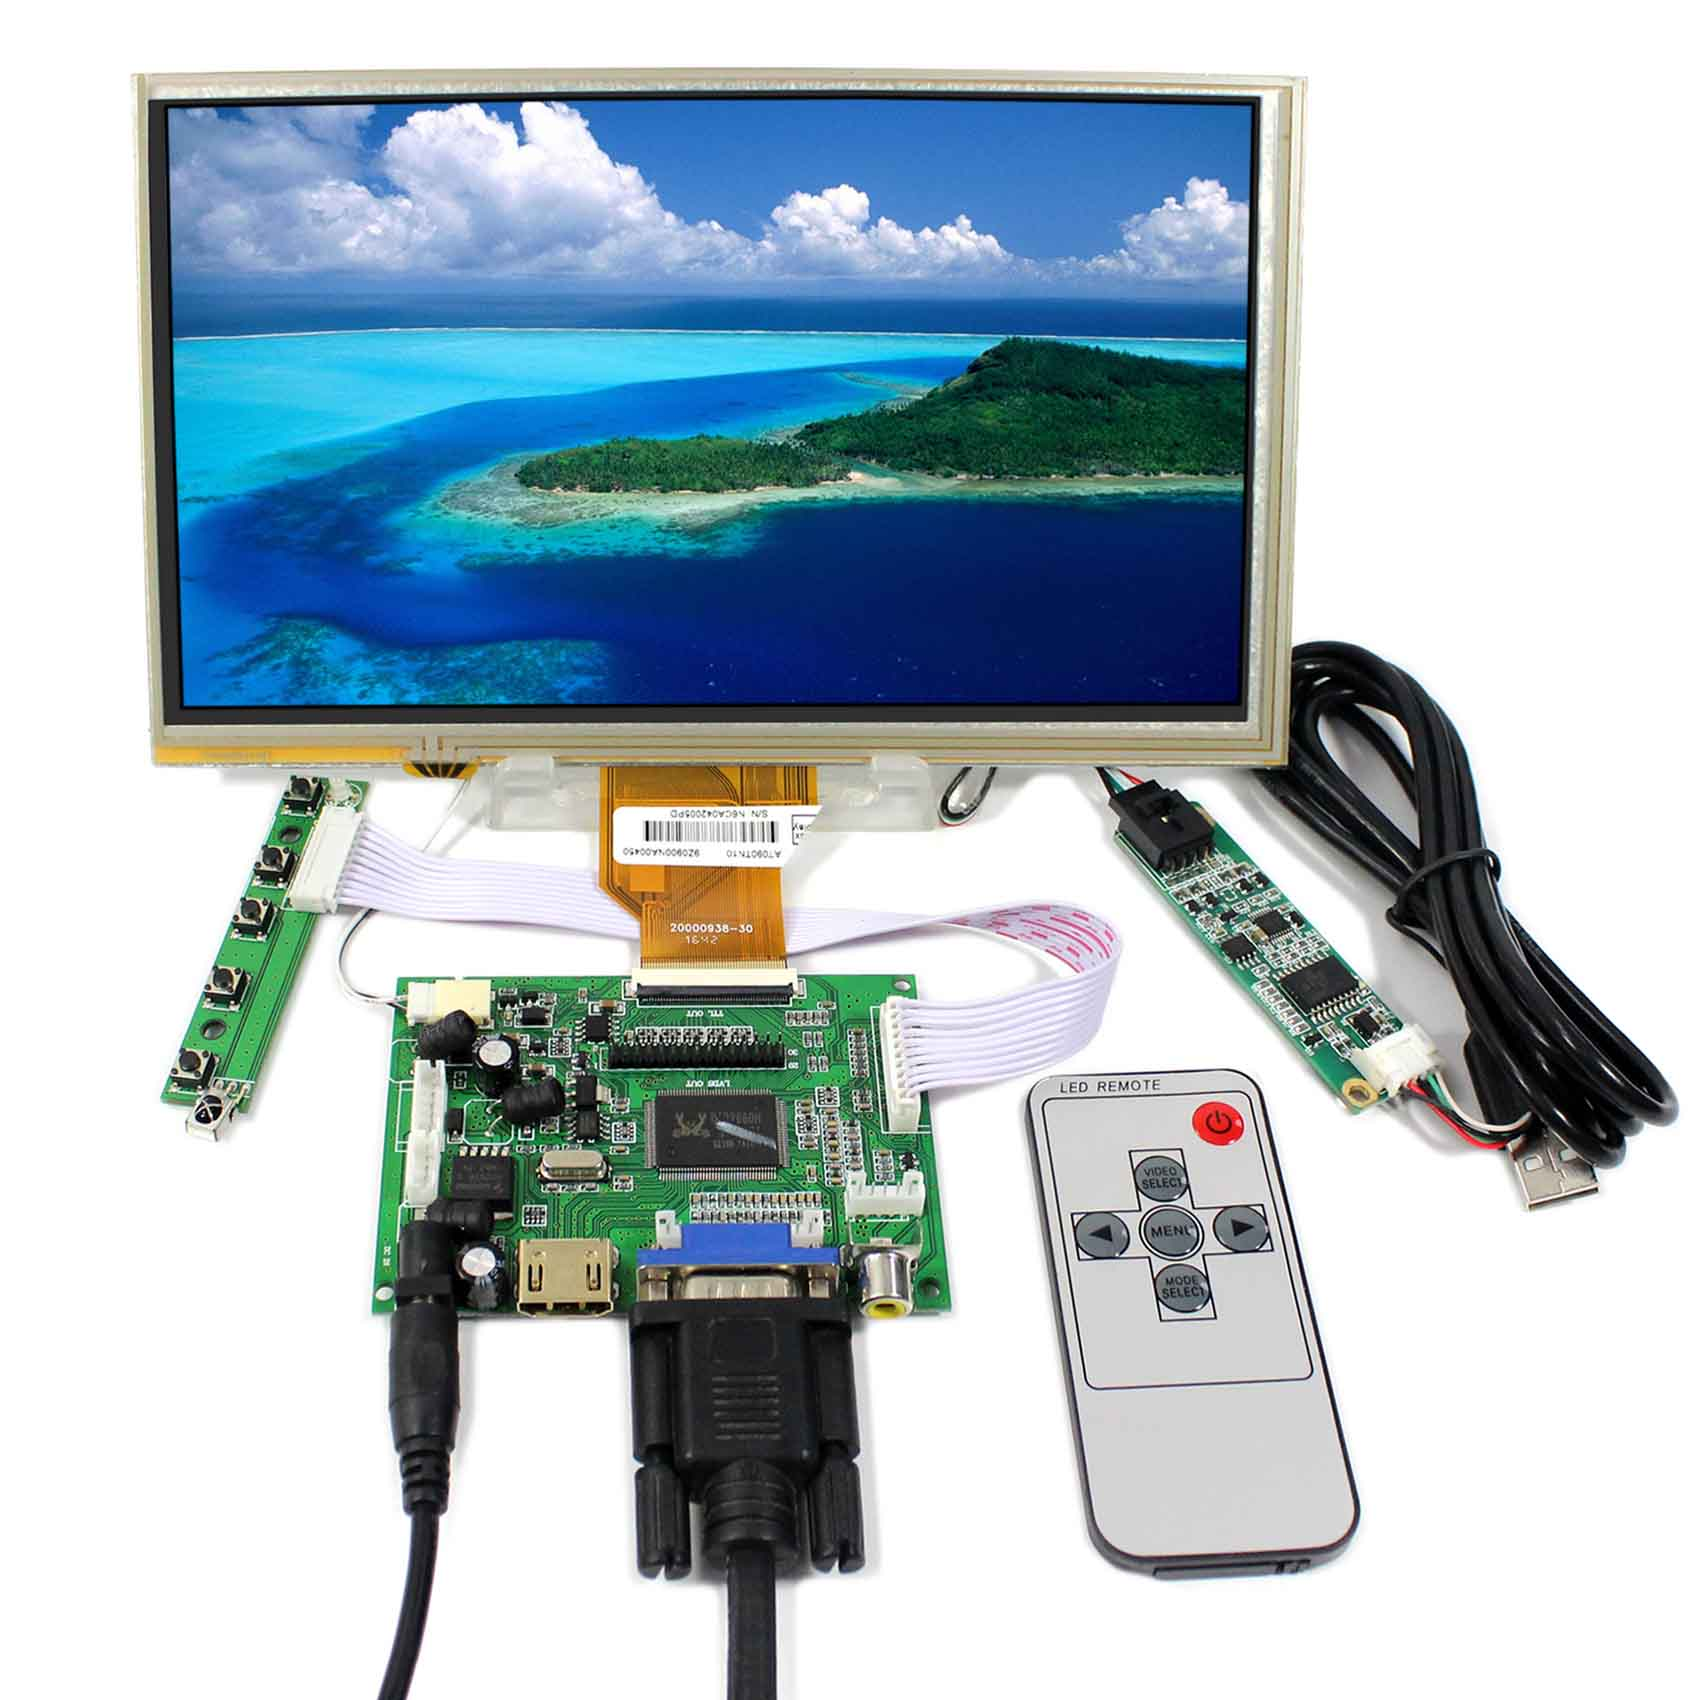 HDMI VGA 2AV LCD Controller Board+9 AT090TN10 AT090TN12 800x480 LCD Screen With Touch Panel new 680w sheep wool clipper electric sheep goats shearing clipper shears 1 set 13 straight tooth blade comb